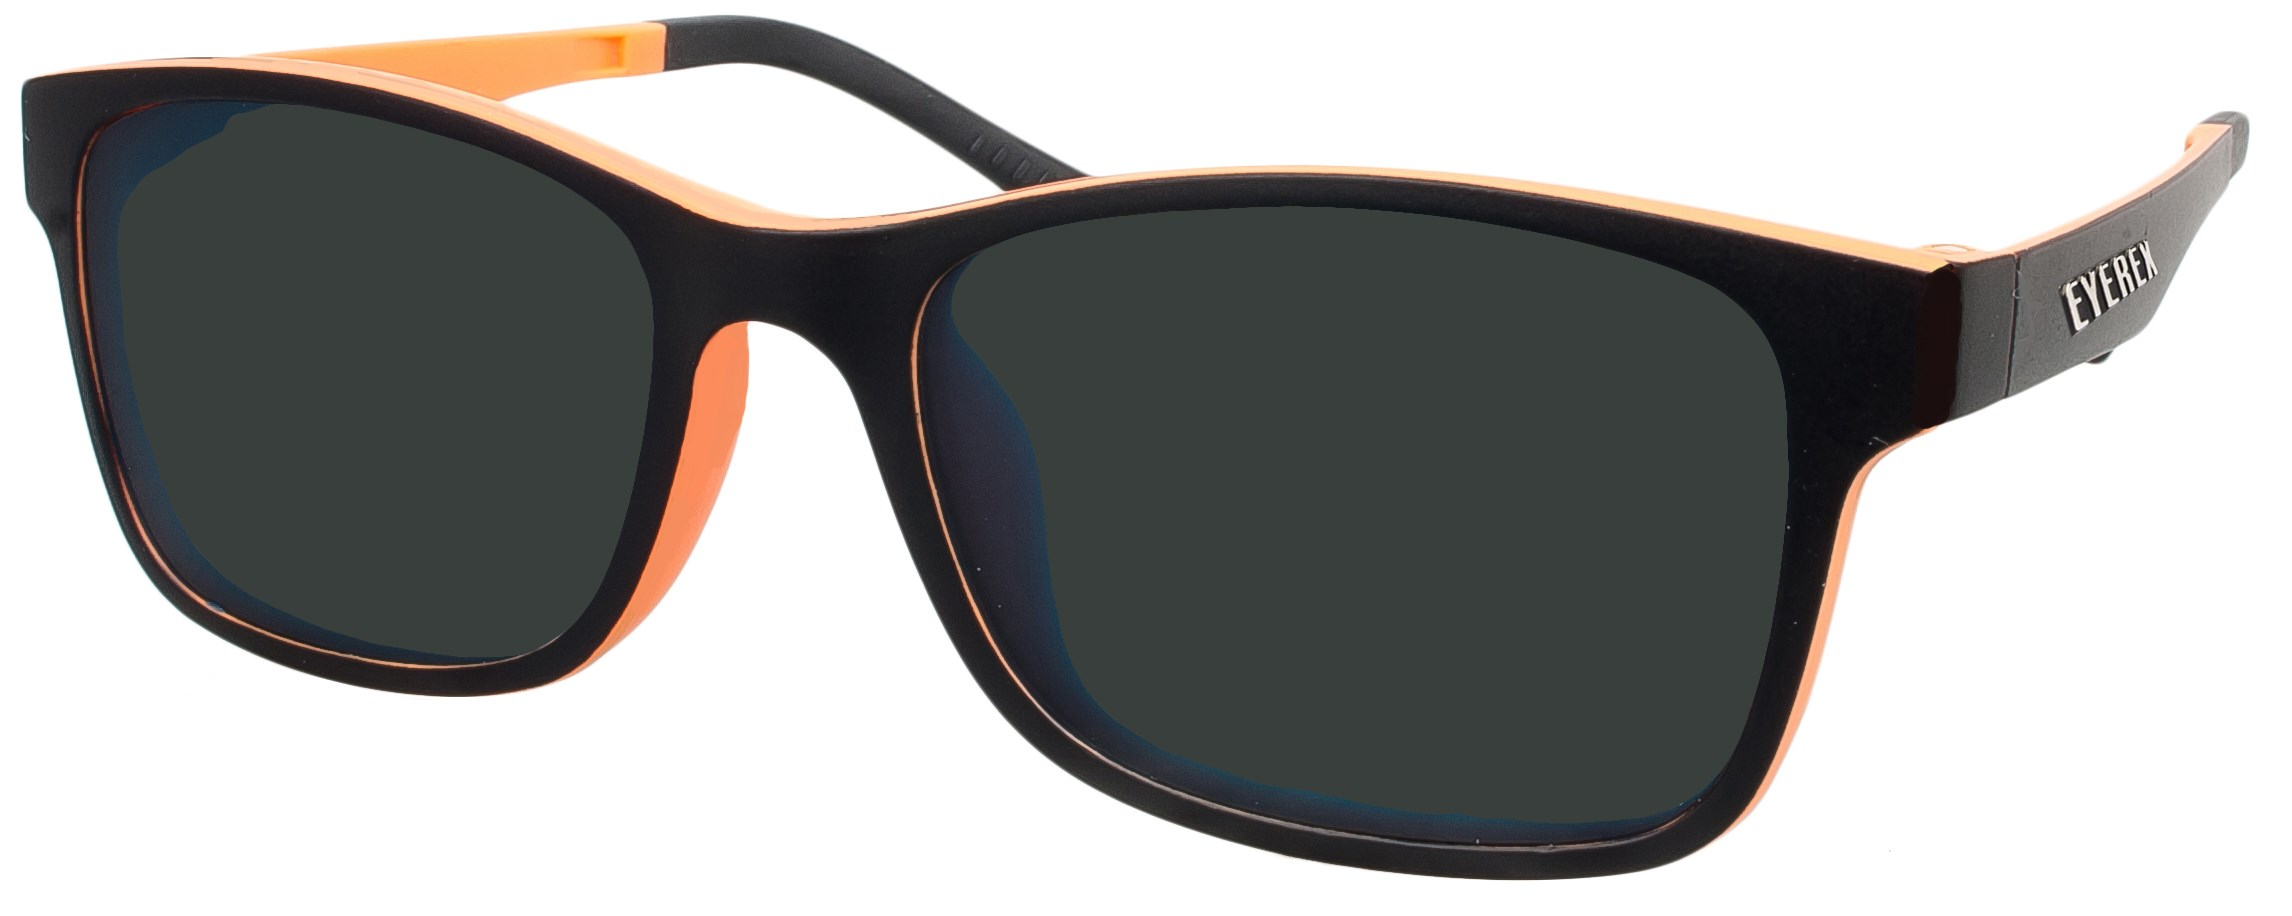 Klipper 8004 schwarz/orange, polarisiert